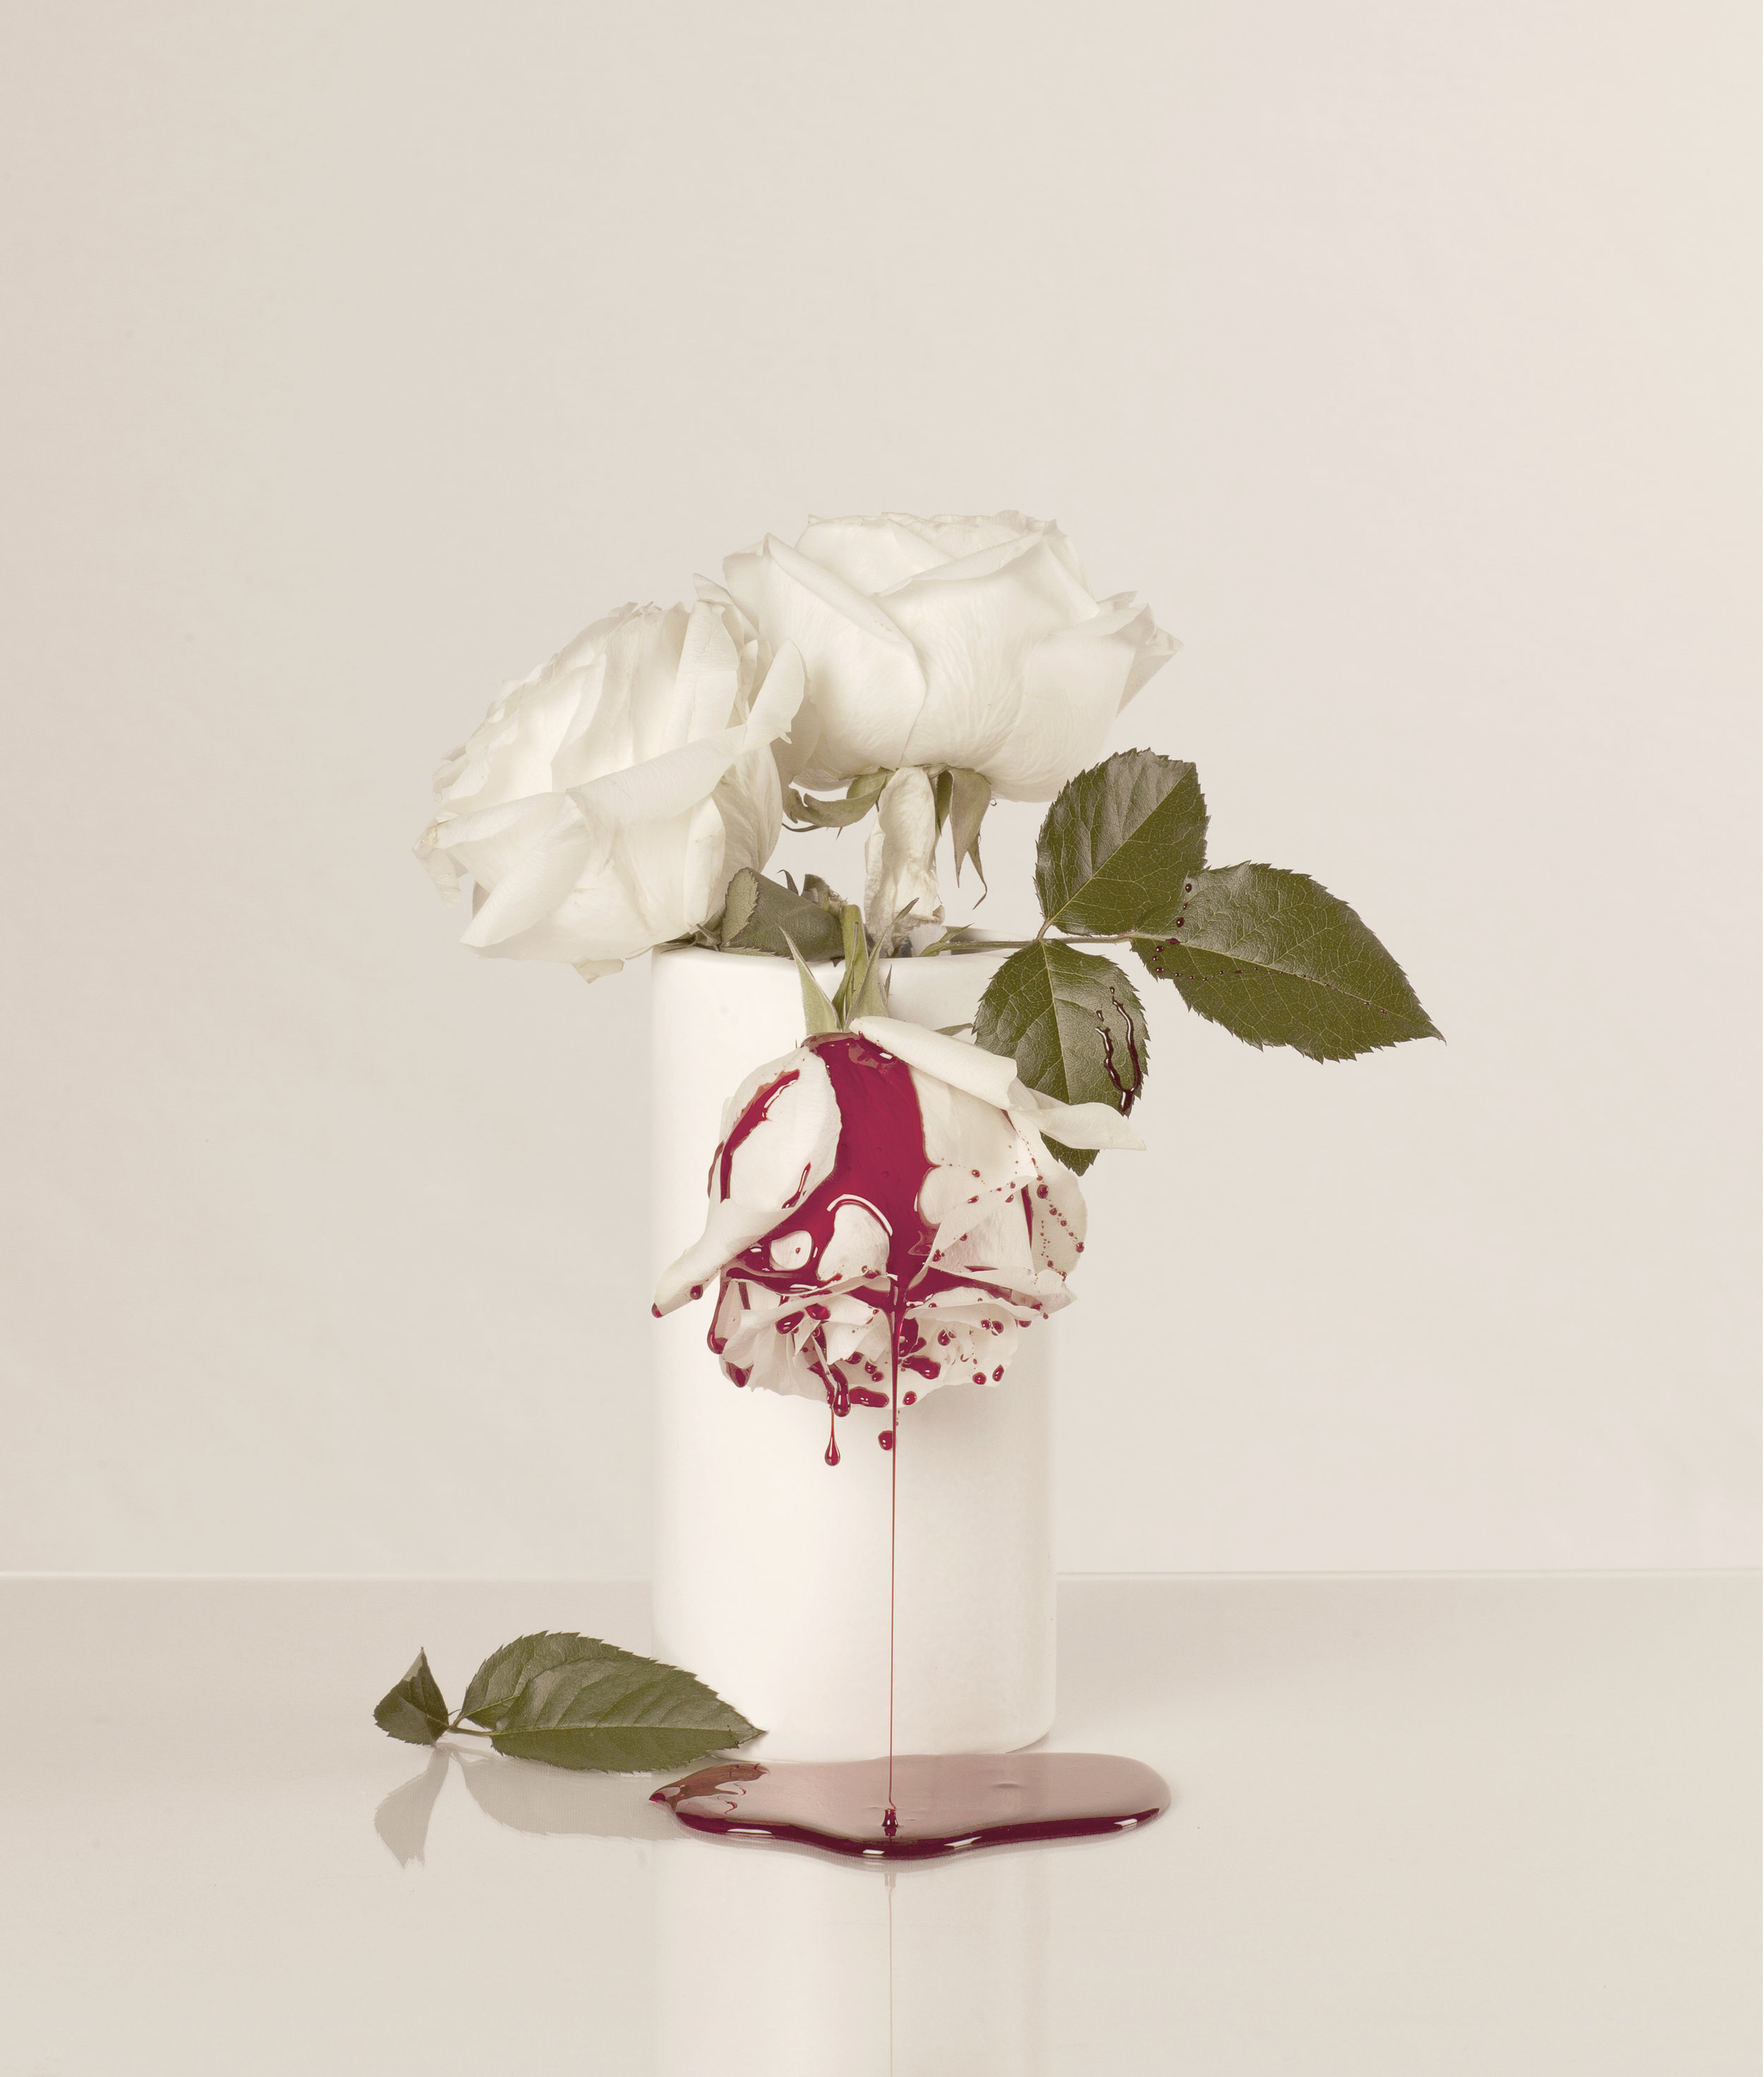 Blood & Roses (15) - colour photograph, edition of 5 + AP